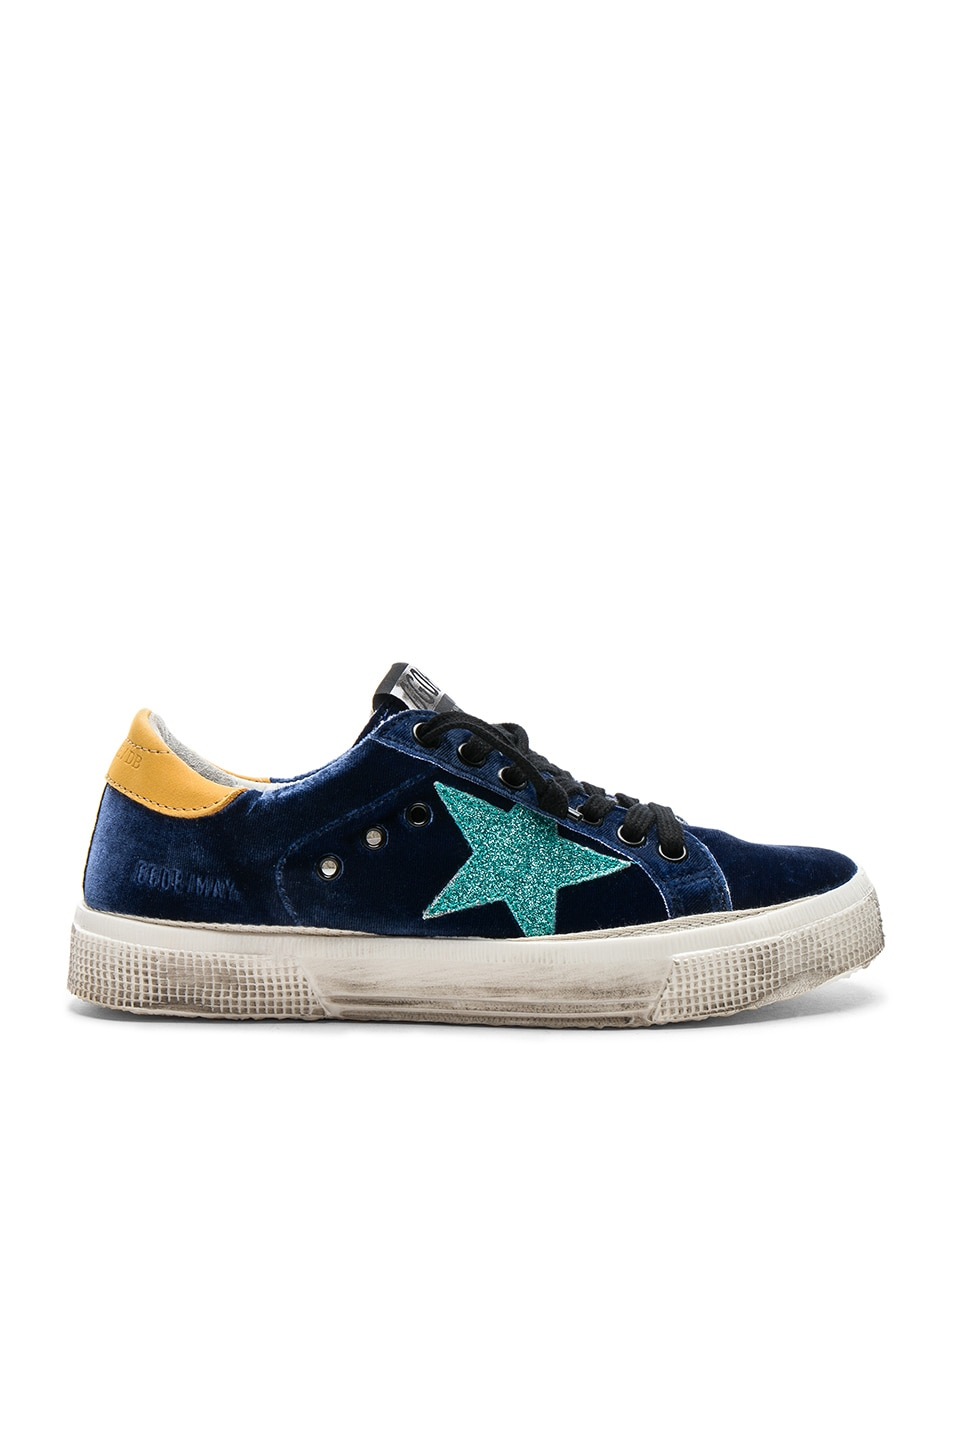 Golden Goose May Distressed Velvet Sneakers Cheapest sale online sale 2015 new for sale 2014 9VN53hc